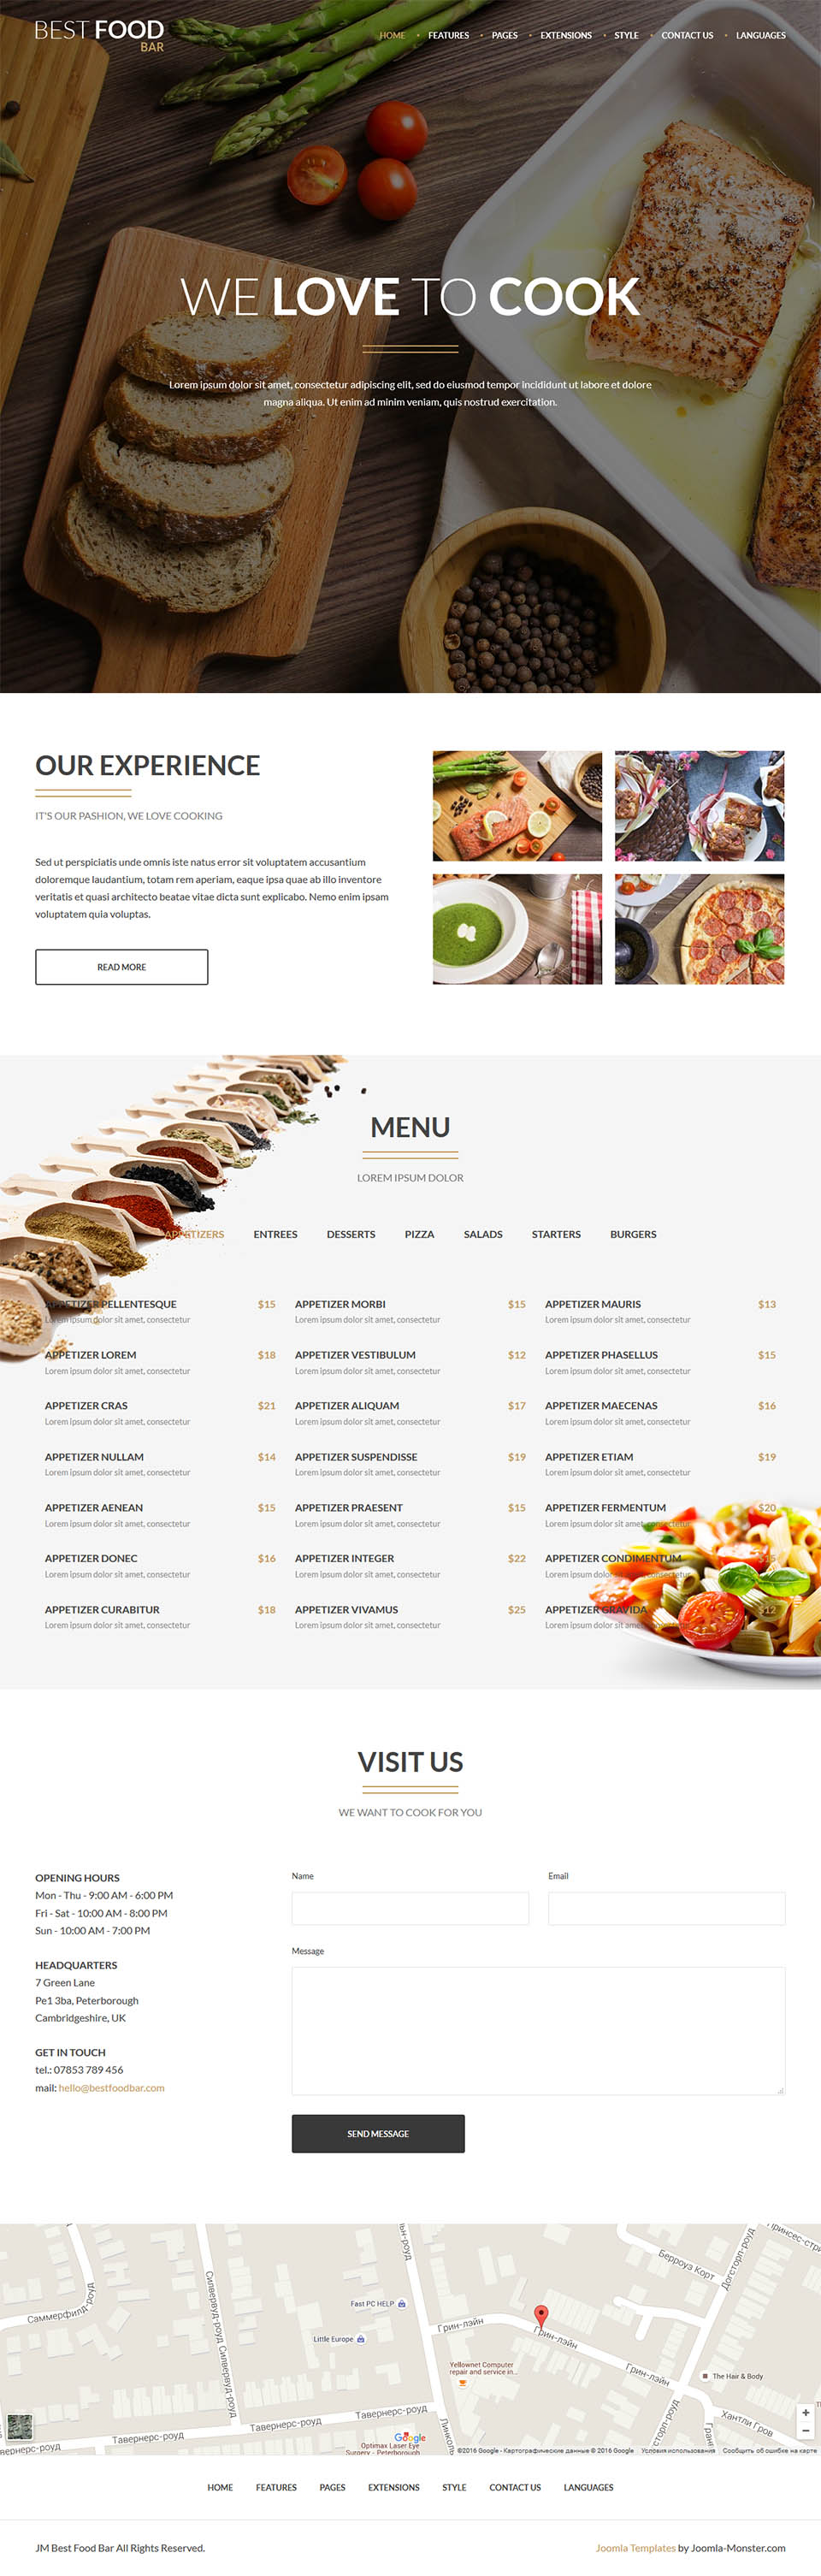 Joomla Monster Best Food Bar V104 The Restaurant Template For Joomla